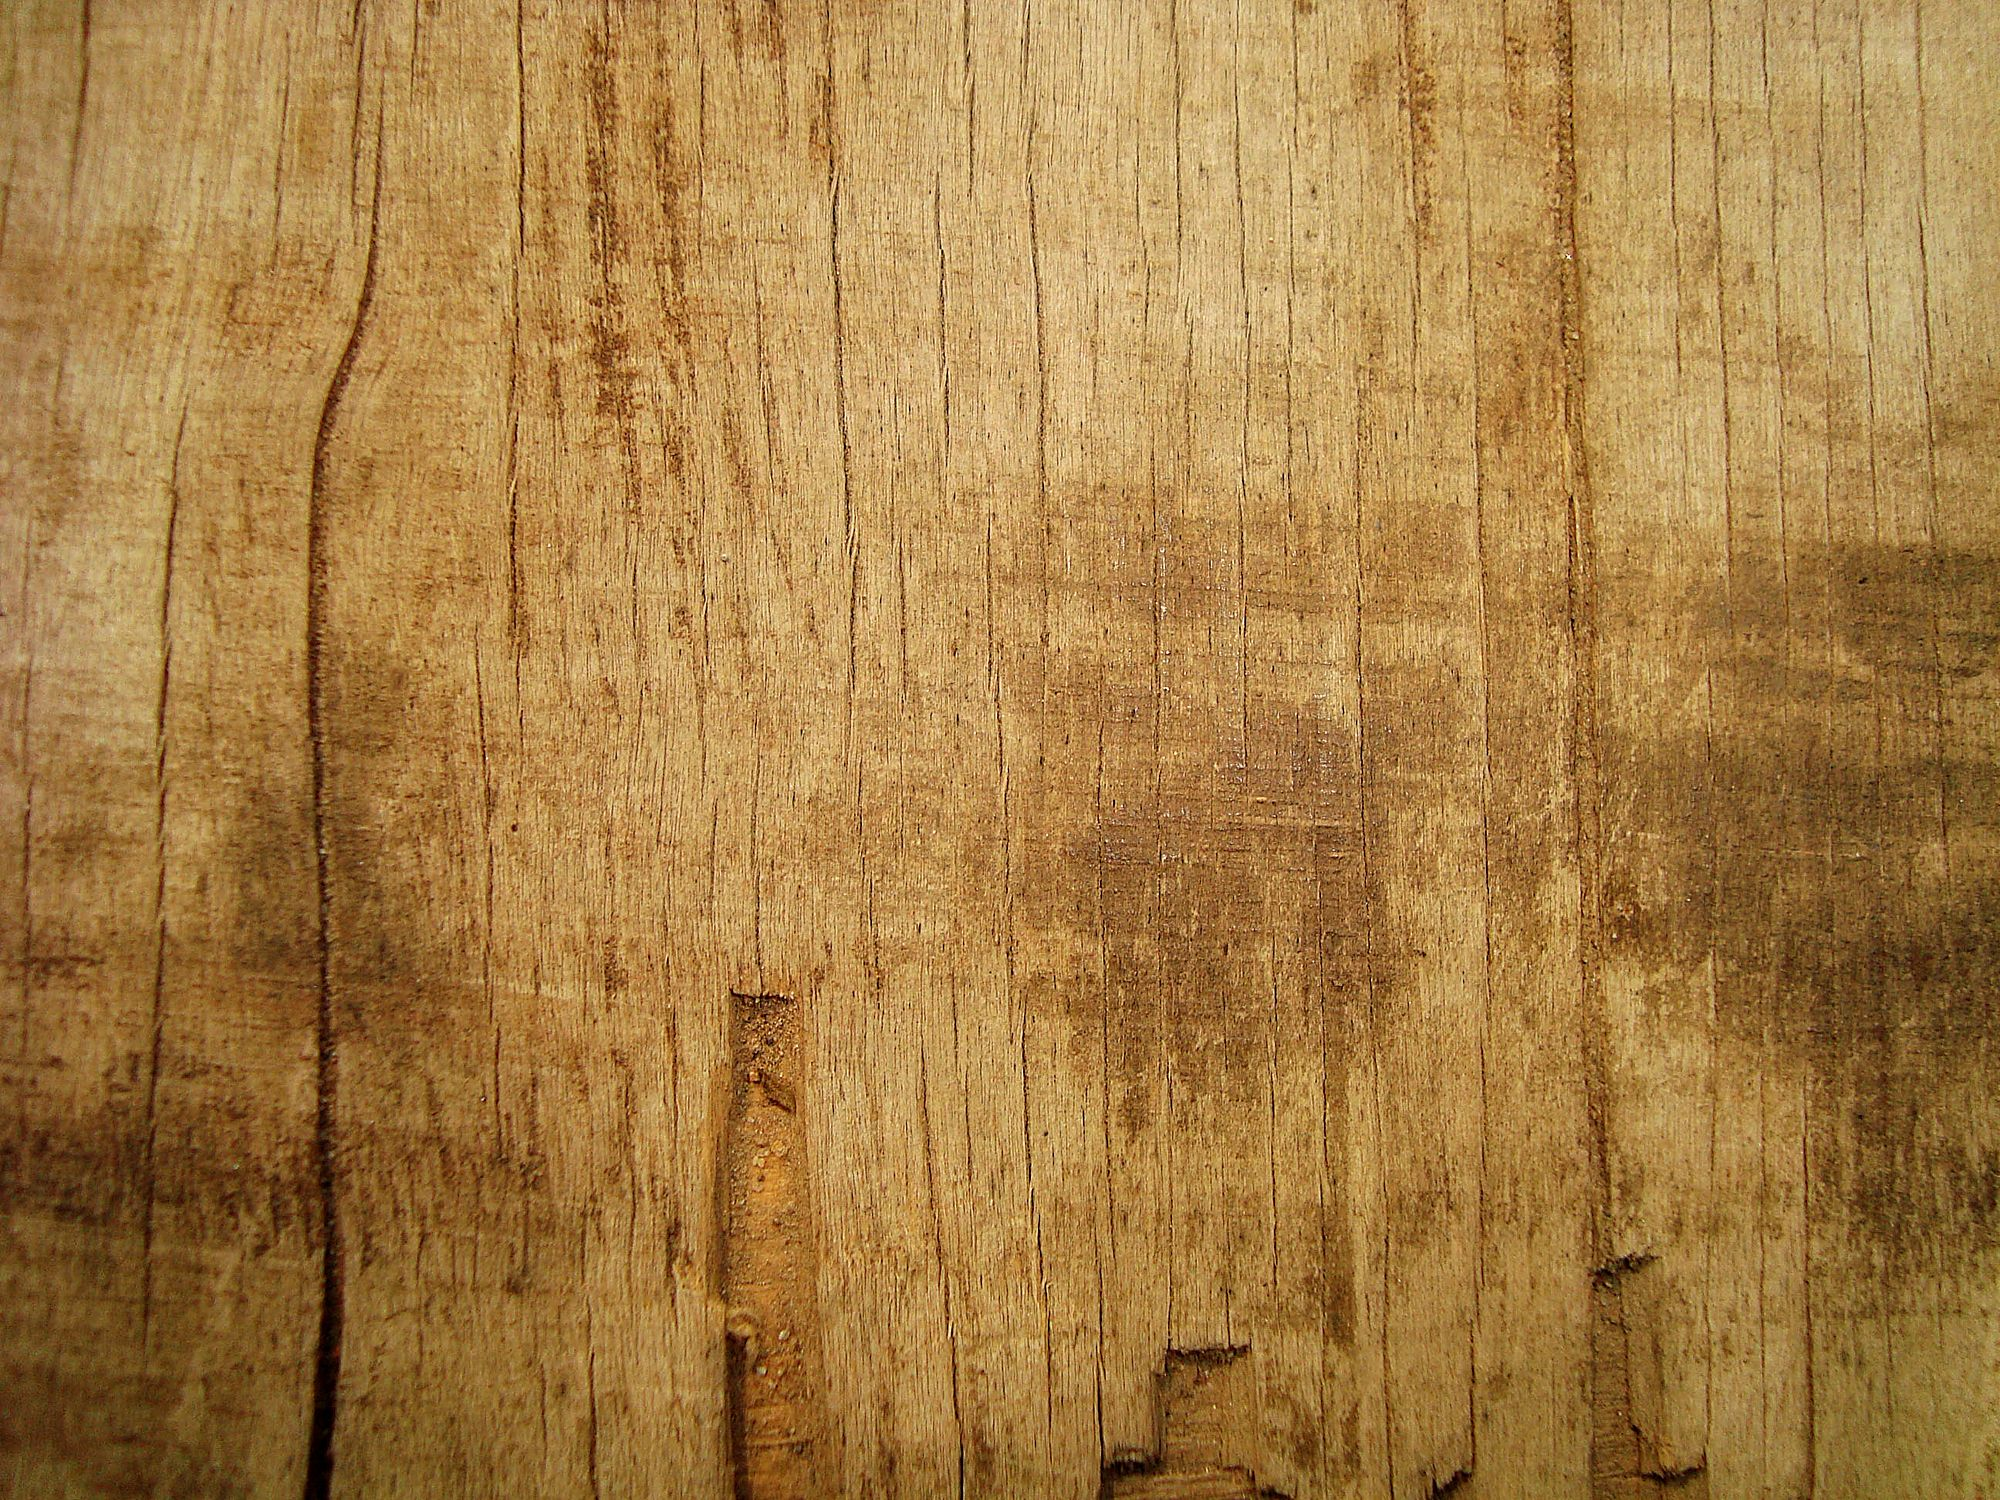 Wood Texture wood texture - free large images | favorite places & spaces